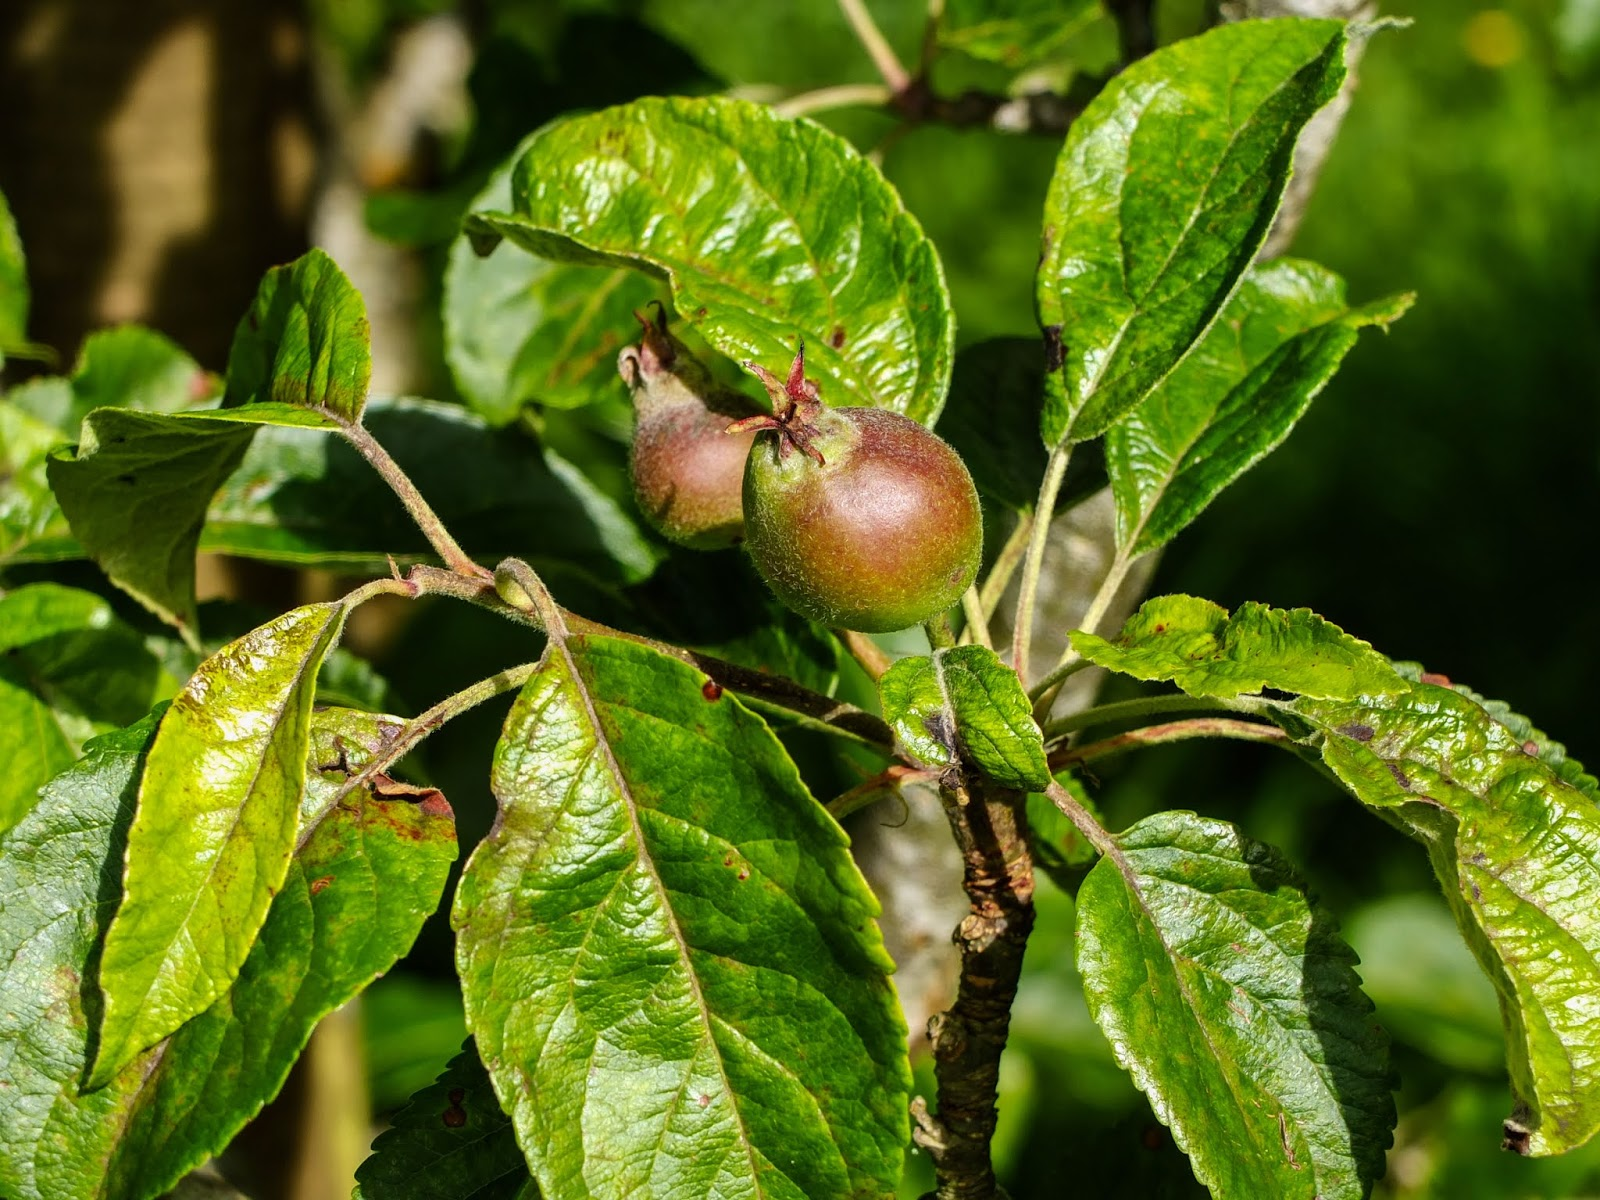 A couple of apples growing on a branch.